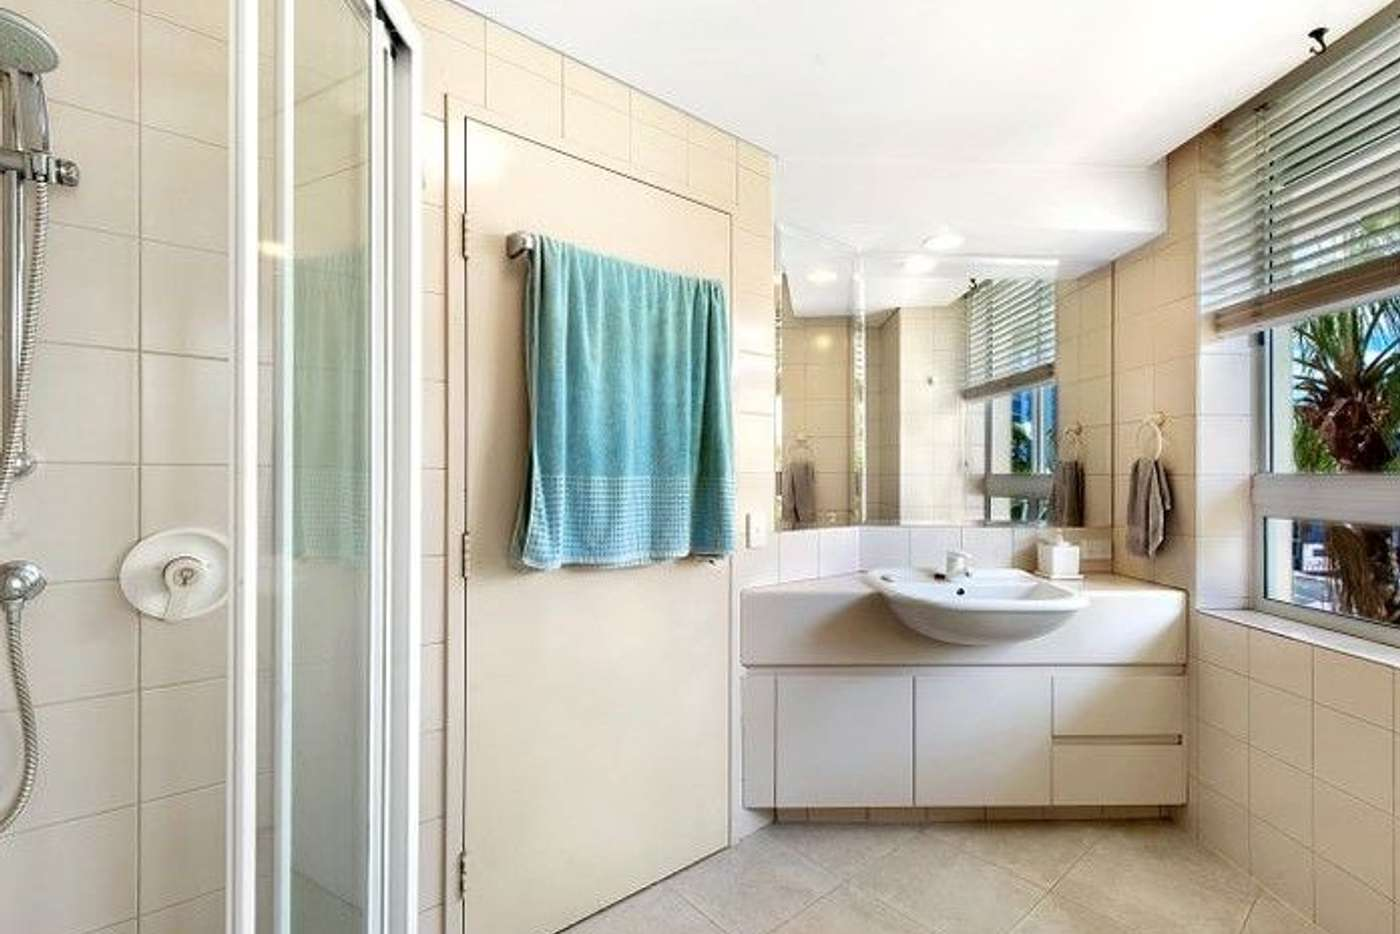 Seventh view of Homely apartment listing, 75 Brighton Parade, Southport QLD 4215